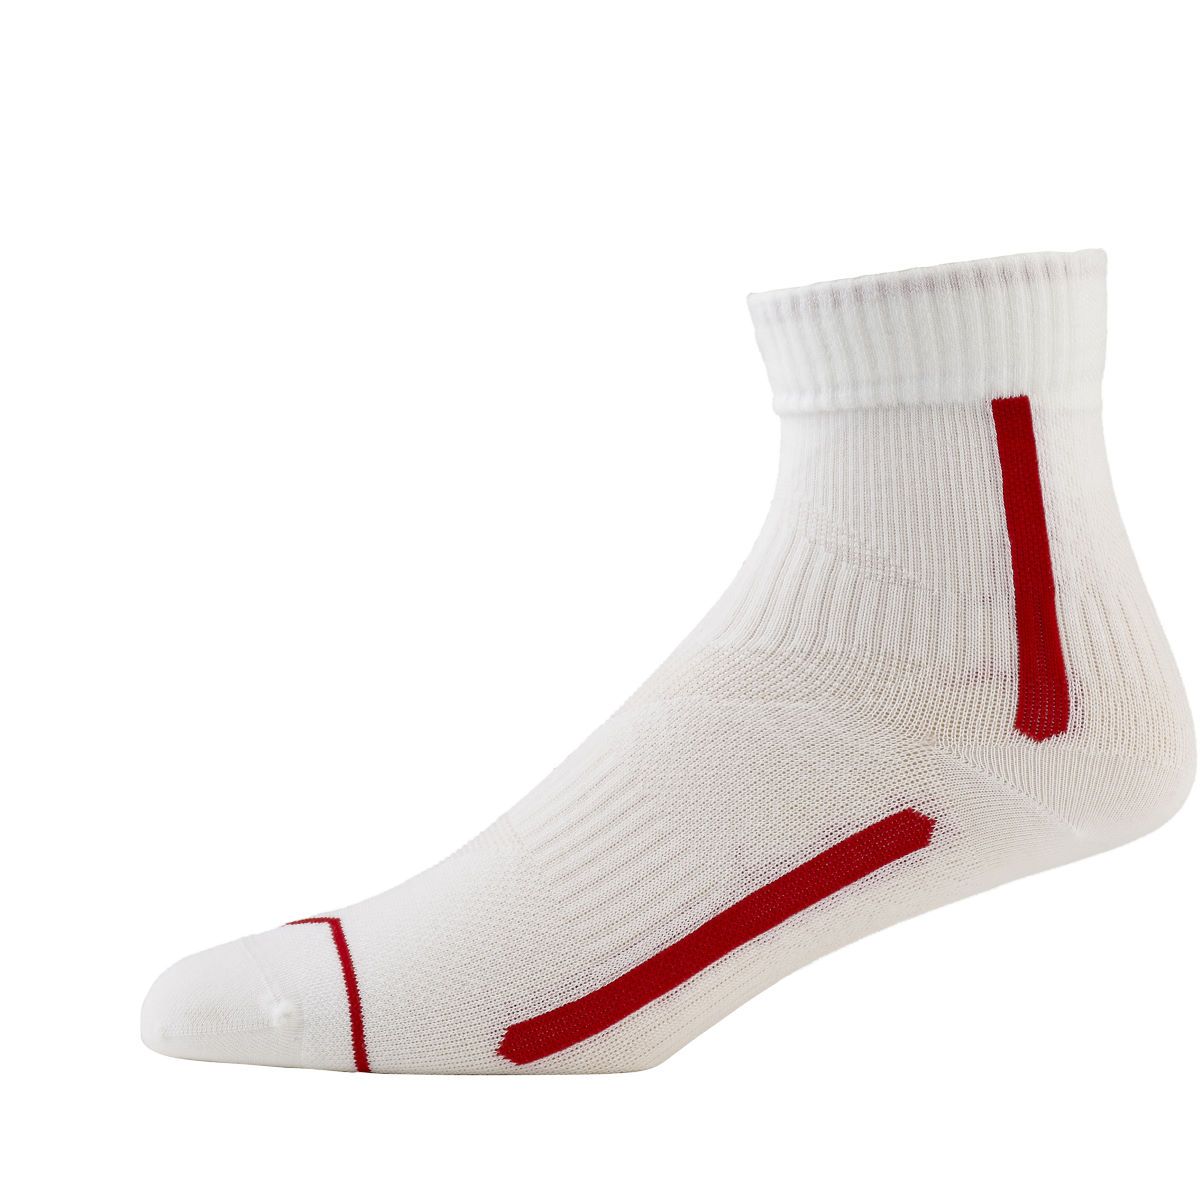 SealSkinz Road Aero Ankle Socks   Cycling Socks